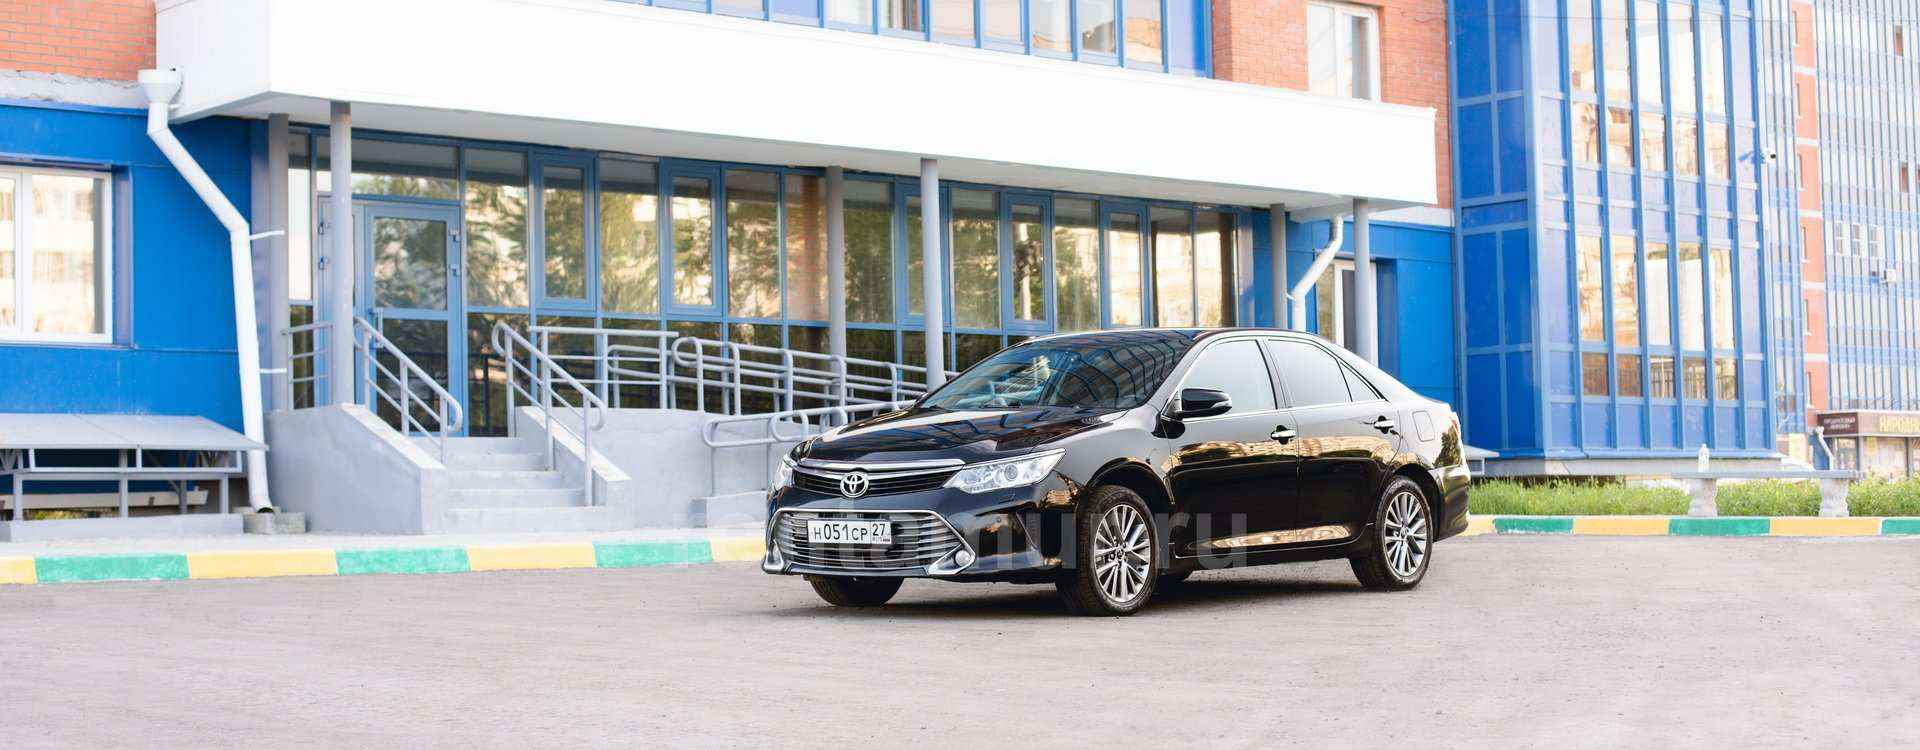 Toyota Camry 2.5 Exclusive